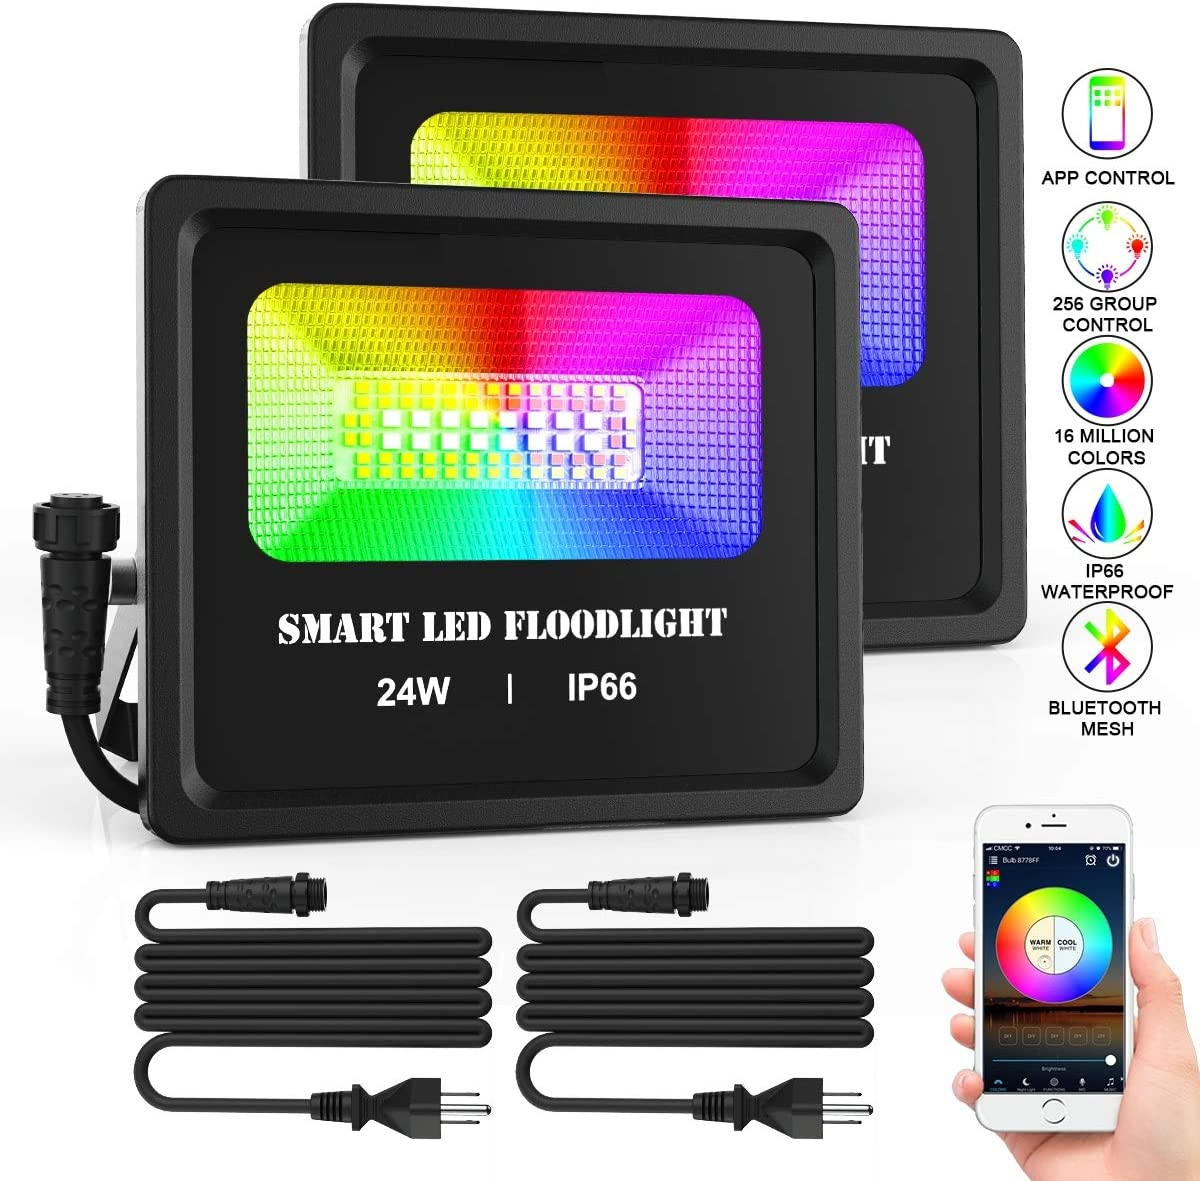 RGB LED Flood Light 24W 6500K 16 Million Color Changing Stage Lights, Bluetooth Smart Outdoor Lights for Party, Tree light, Spot lights, IP66 Waterproof, US Plug